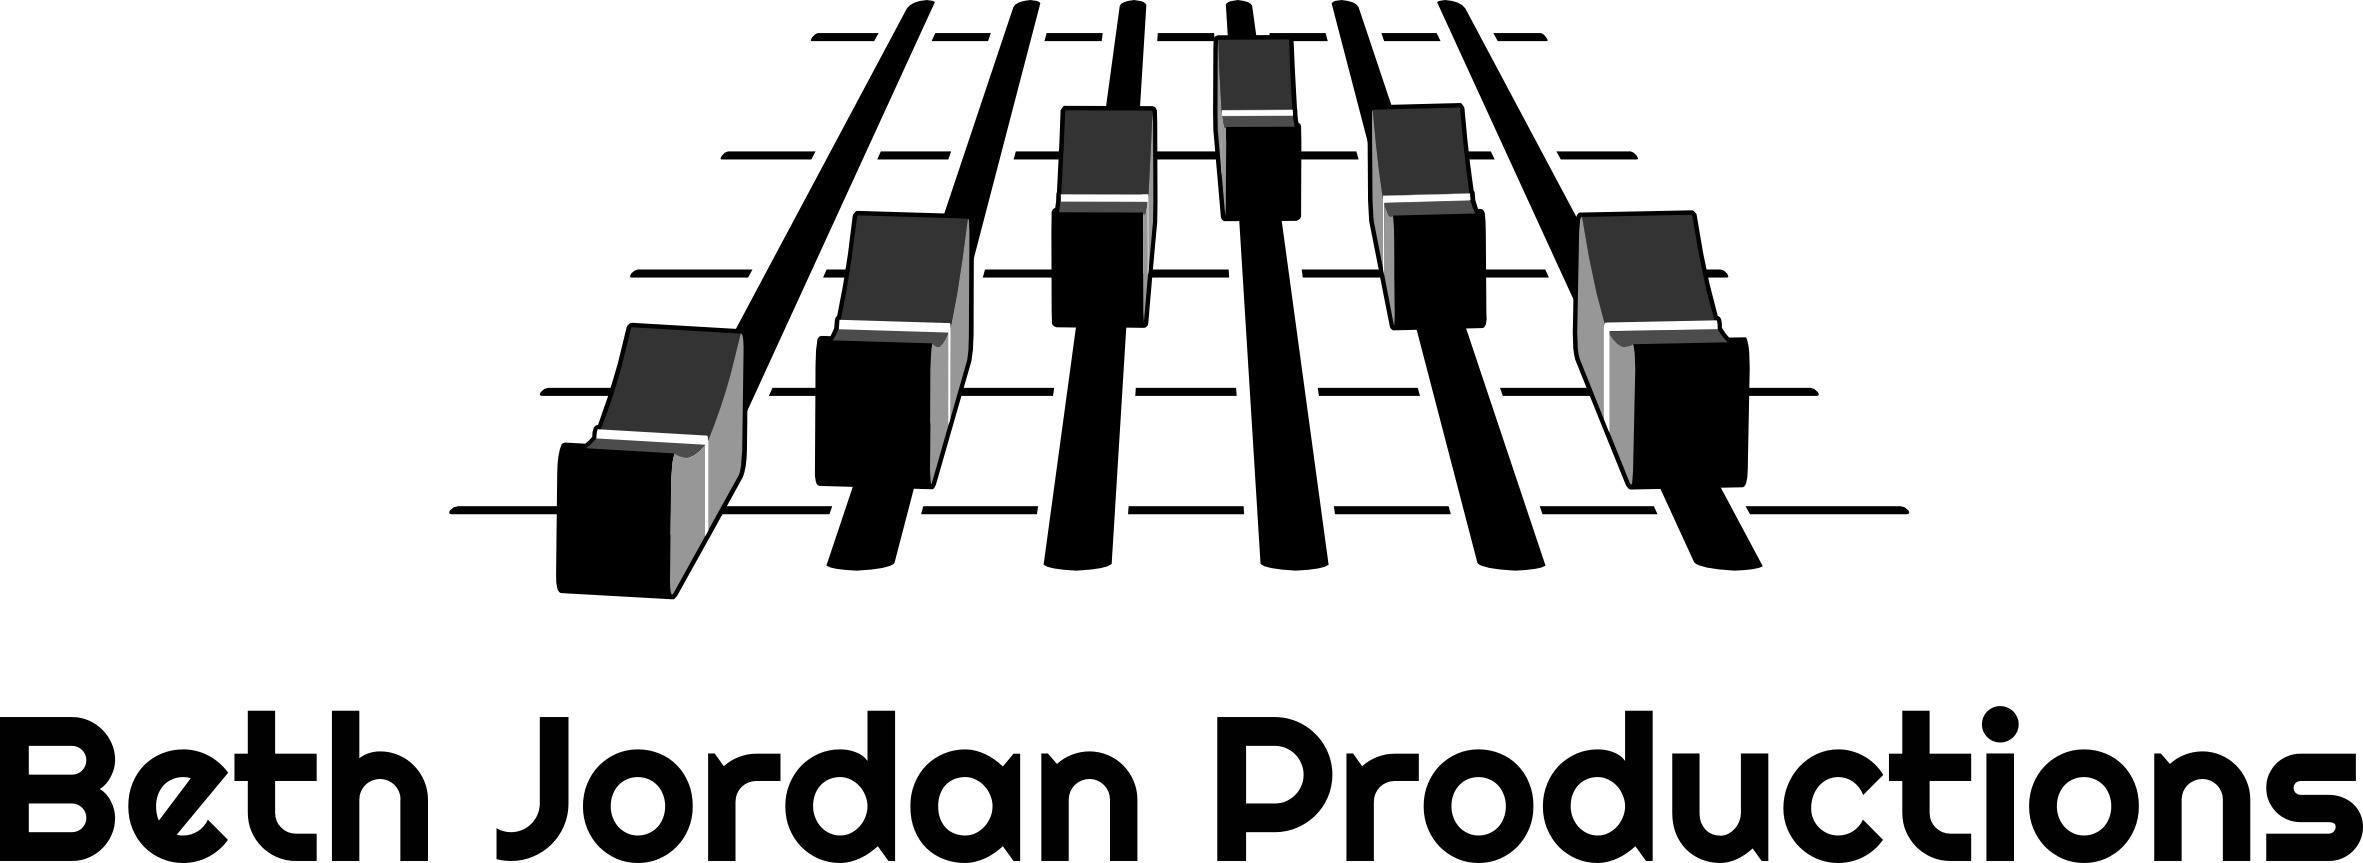 Beth Jordan Productions